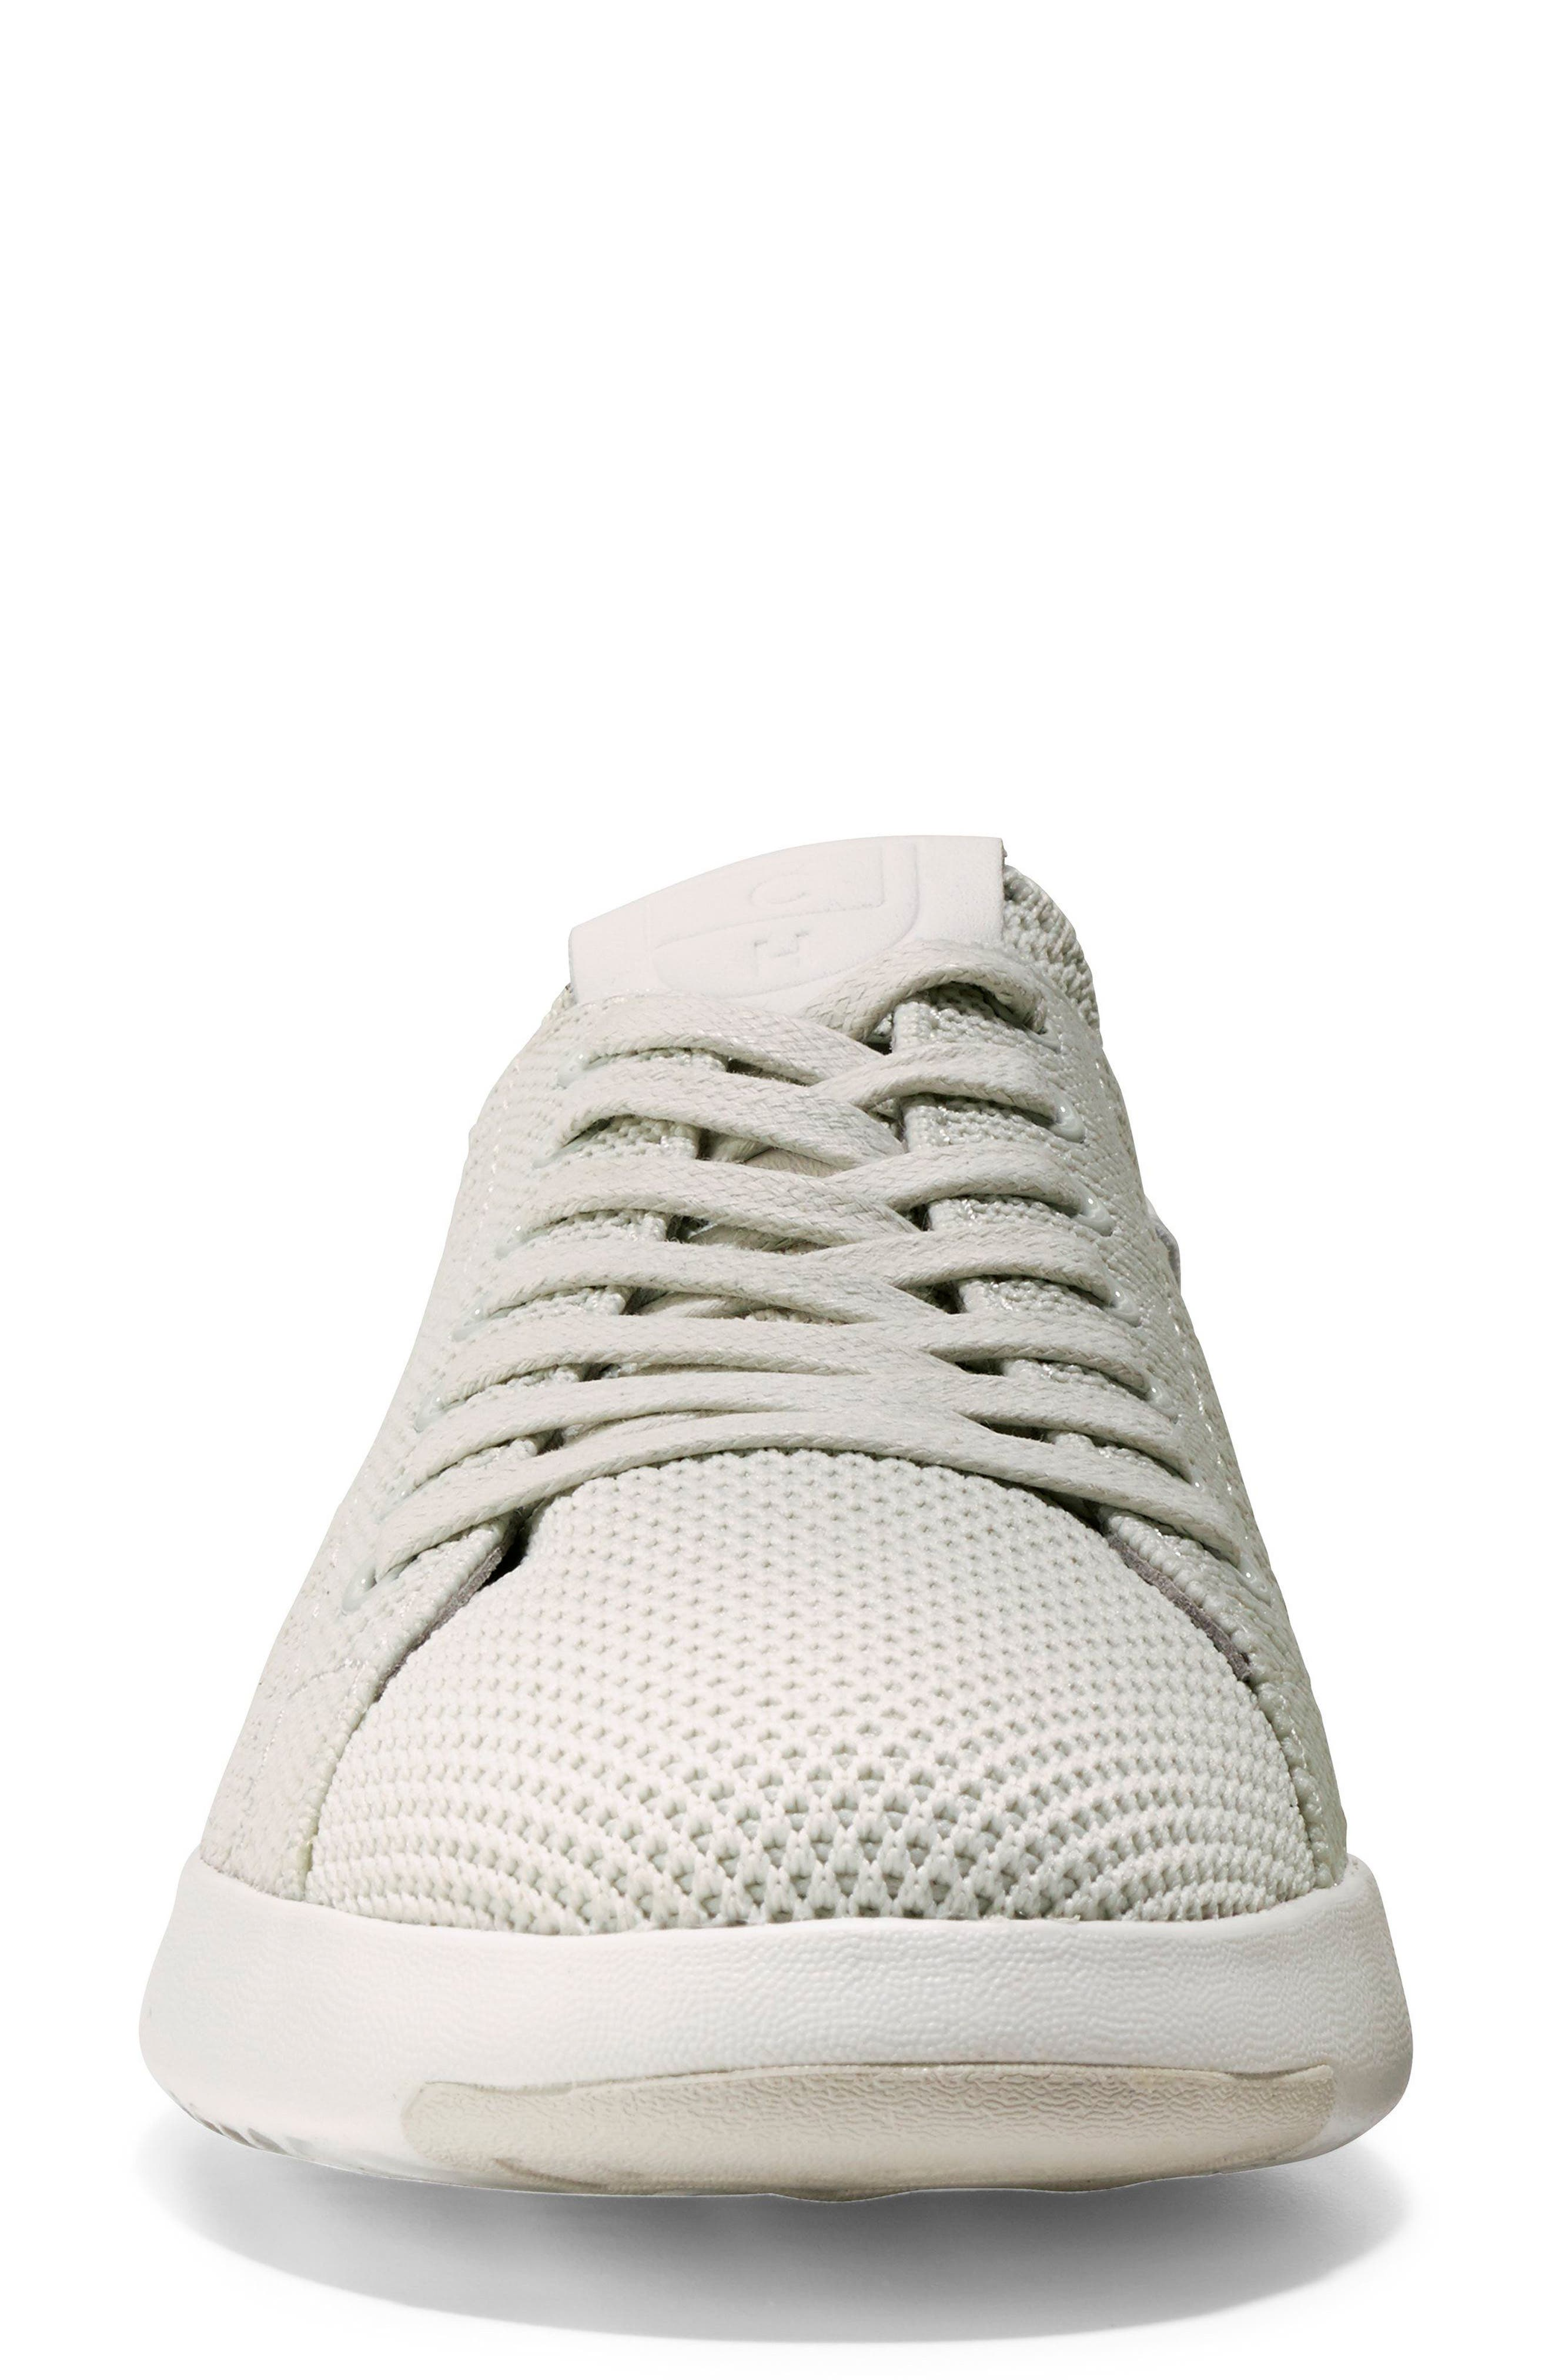 COLE HAAN, GrandPro Stitchlite Sneaker, Alternate thumbnail 4, color, CHALK FABRIC